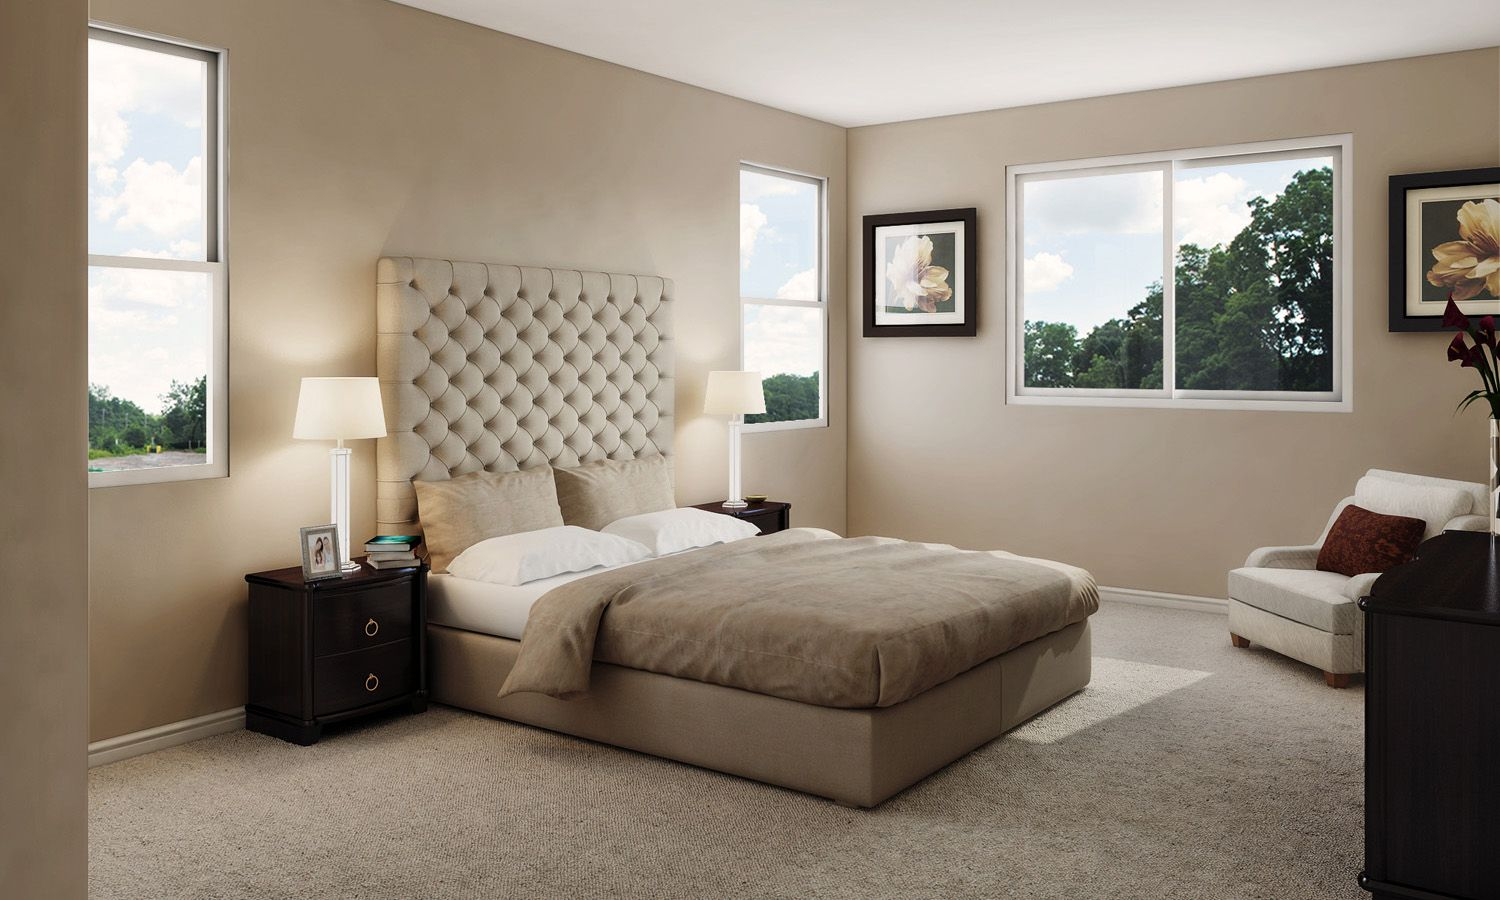 Bedroom featured in The Silva Bella By Stonefield Home in Merced, CA